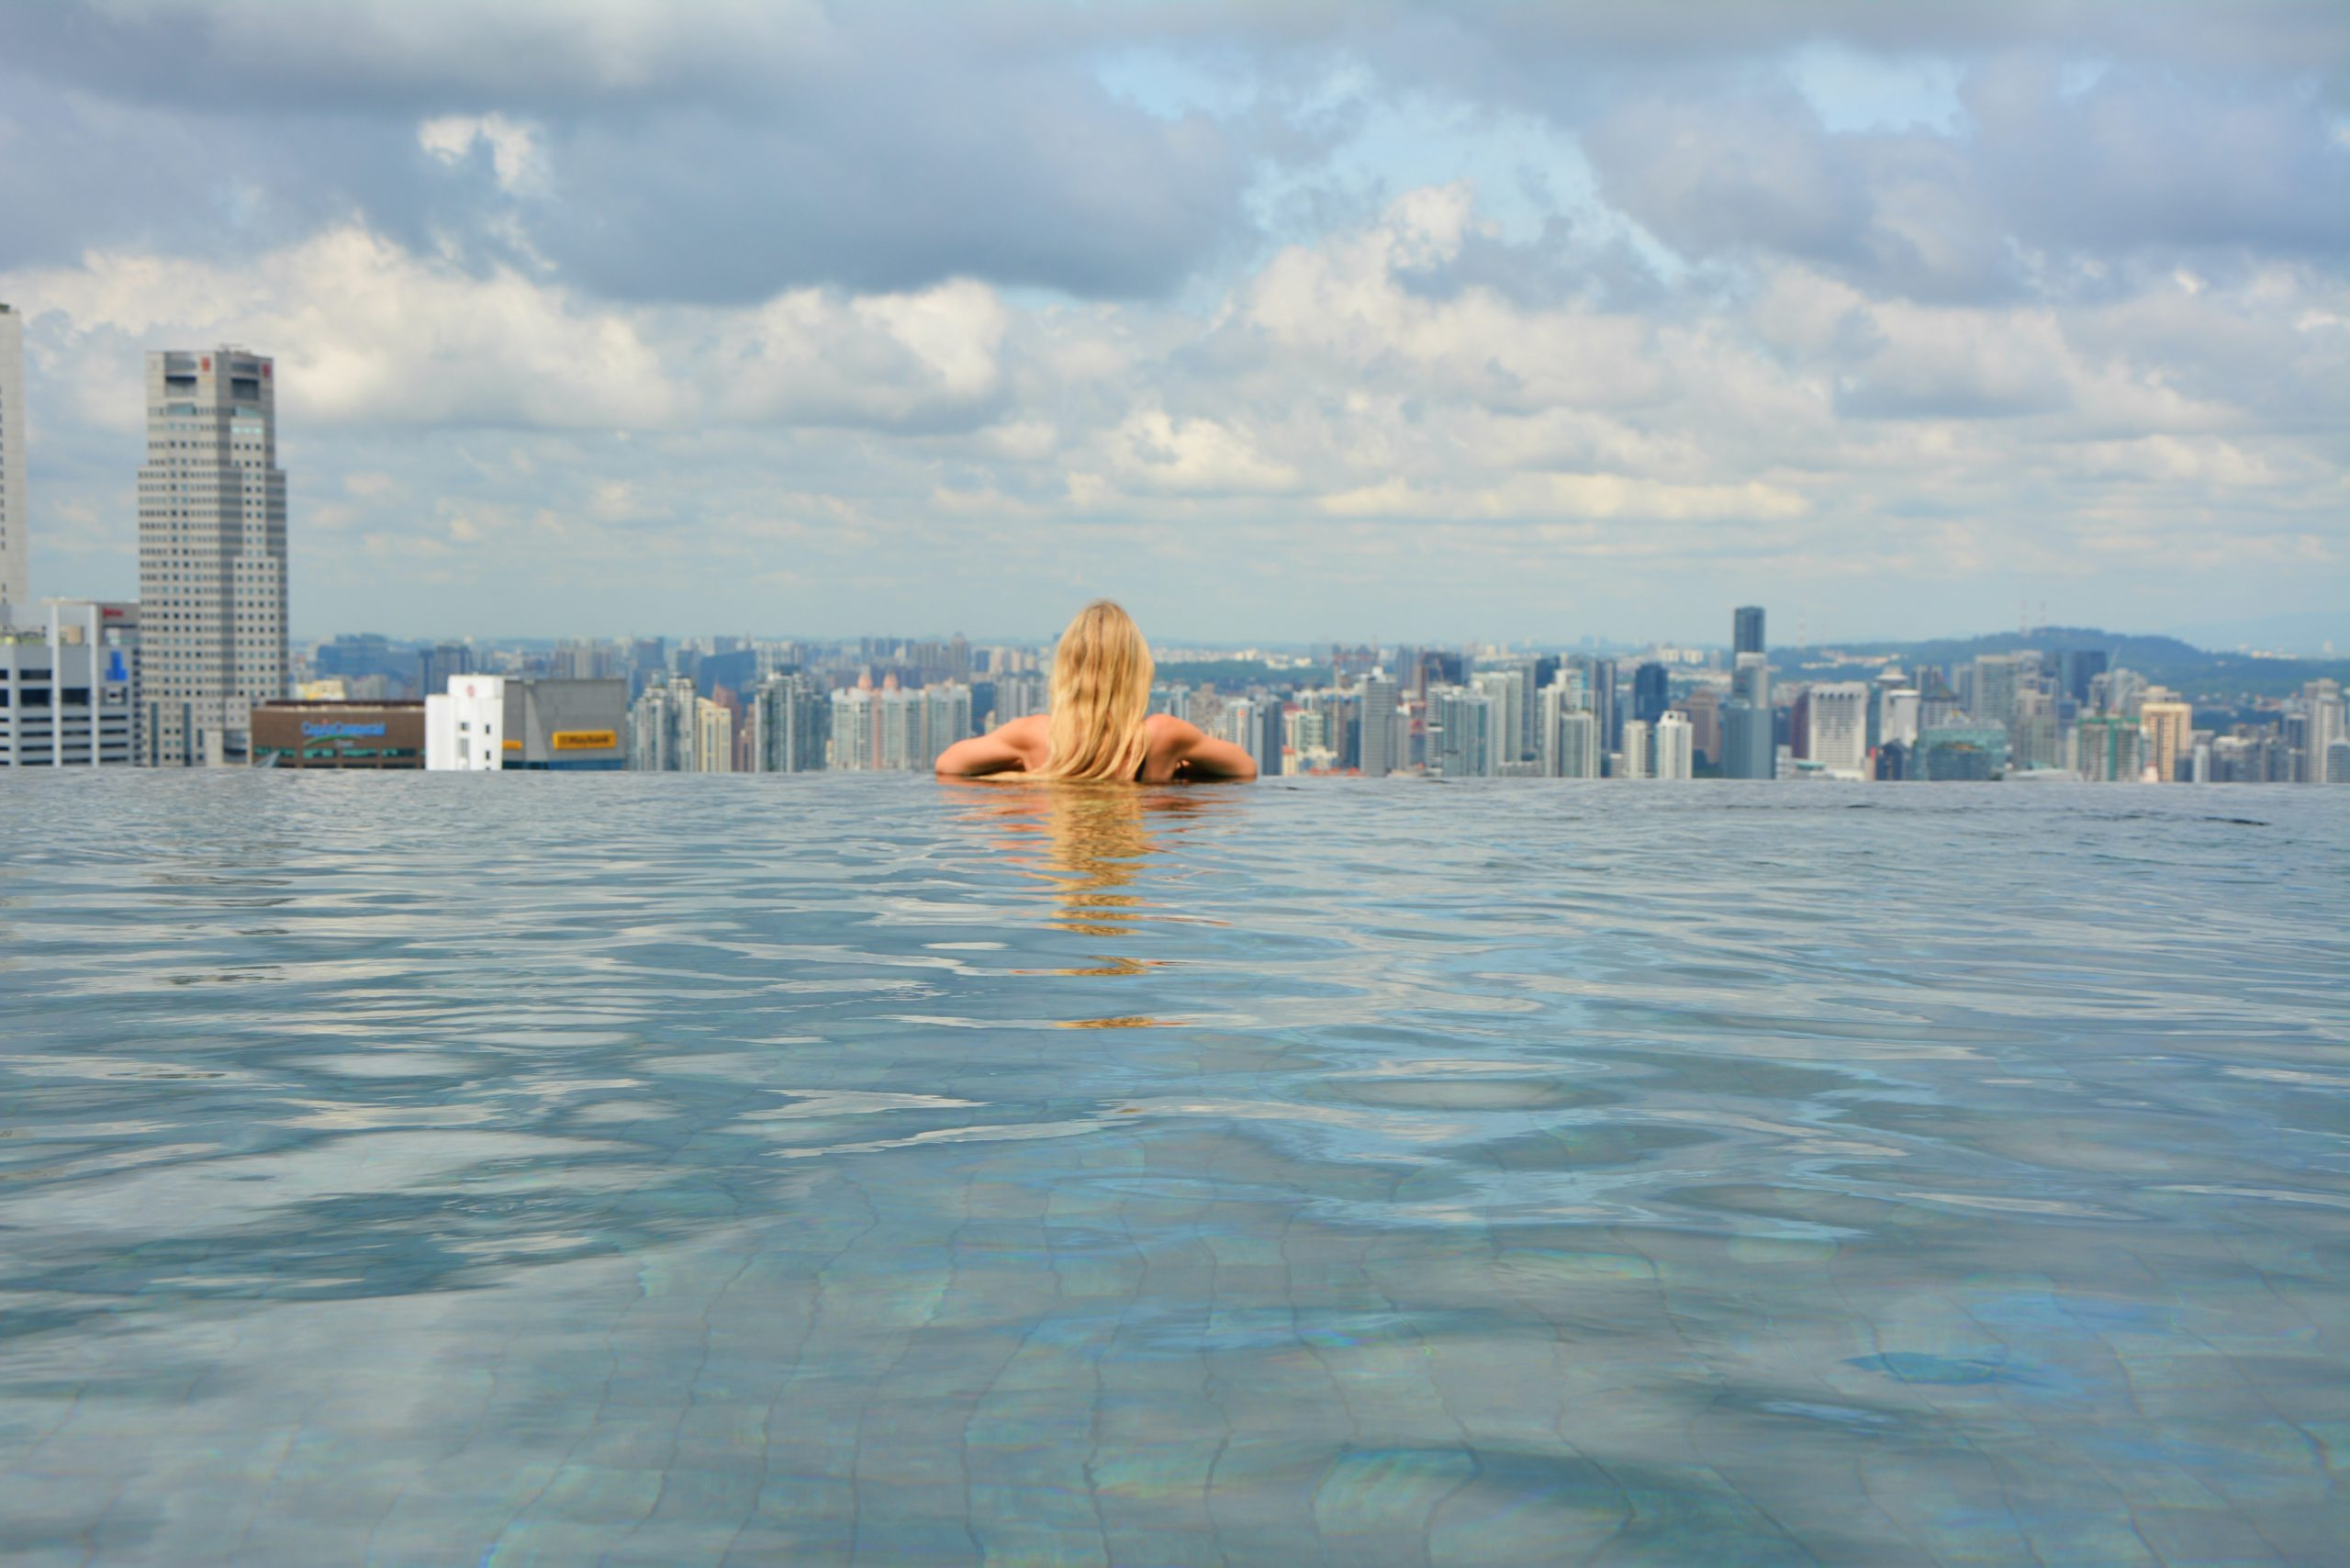 Marina Bay Sands Infinity Pool Empty